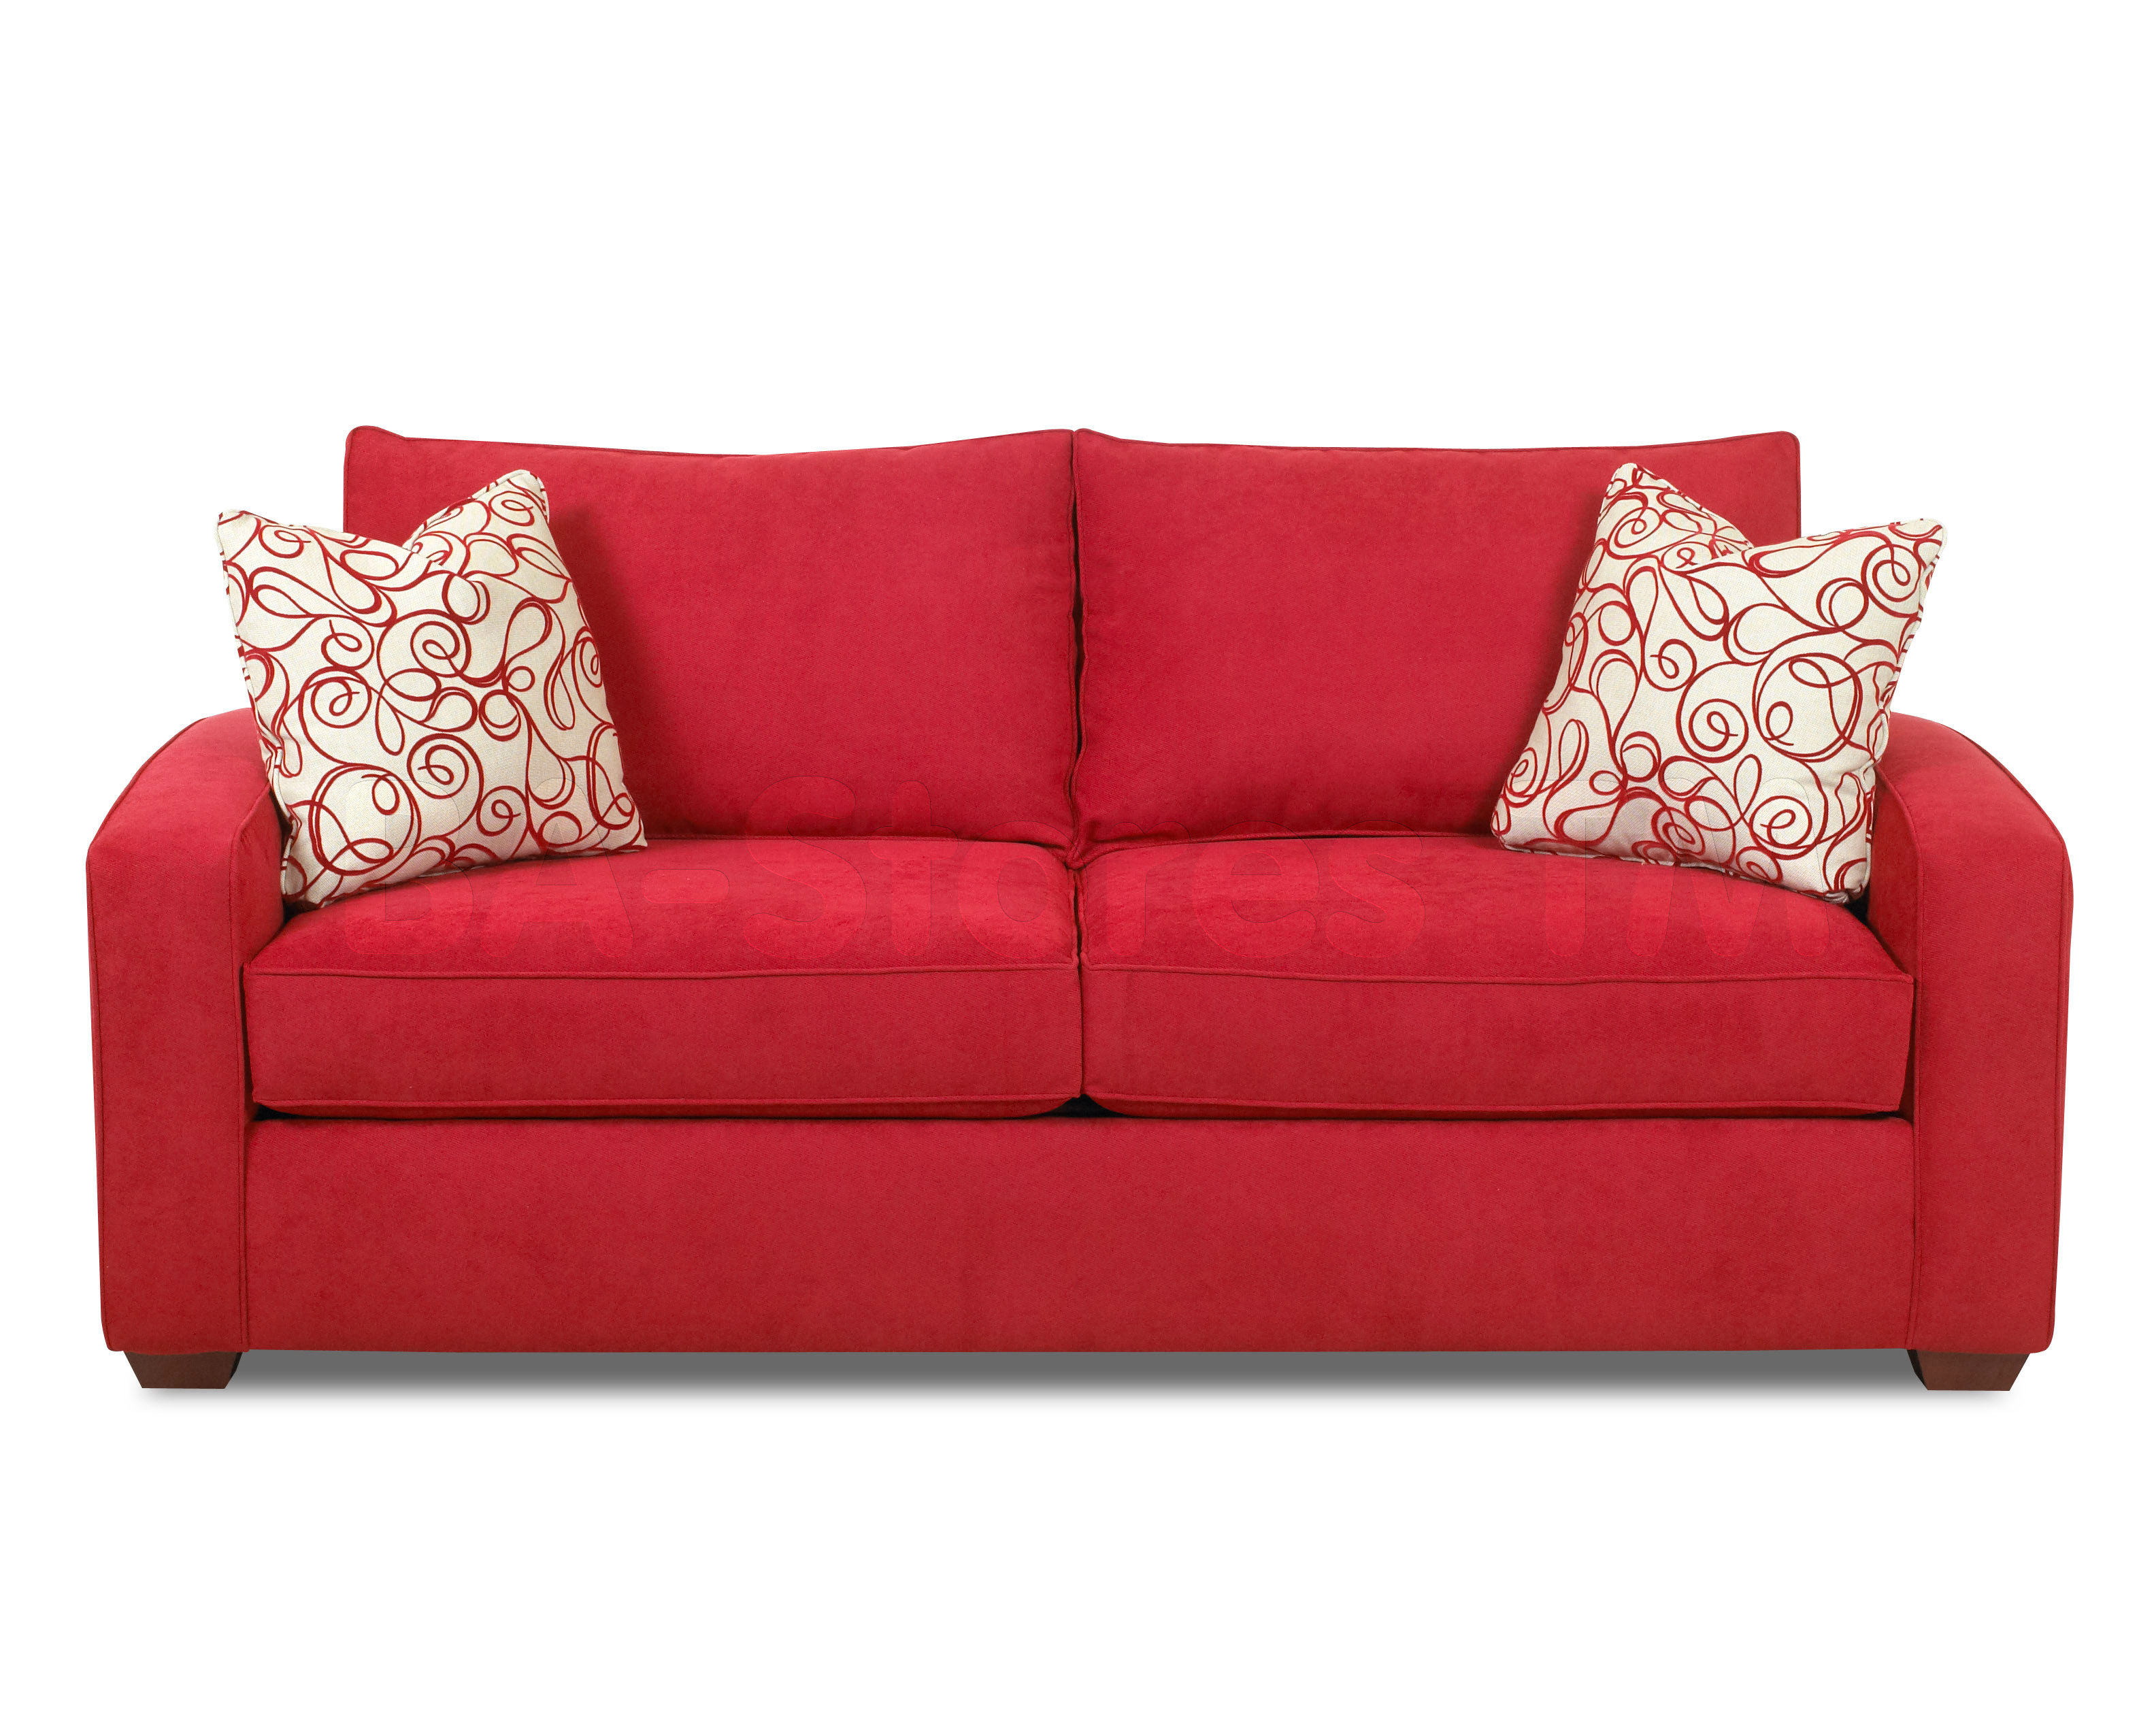 Furniture sofa bladen sofa ashley furniture home thesofa - Furniture picture ...